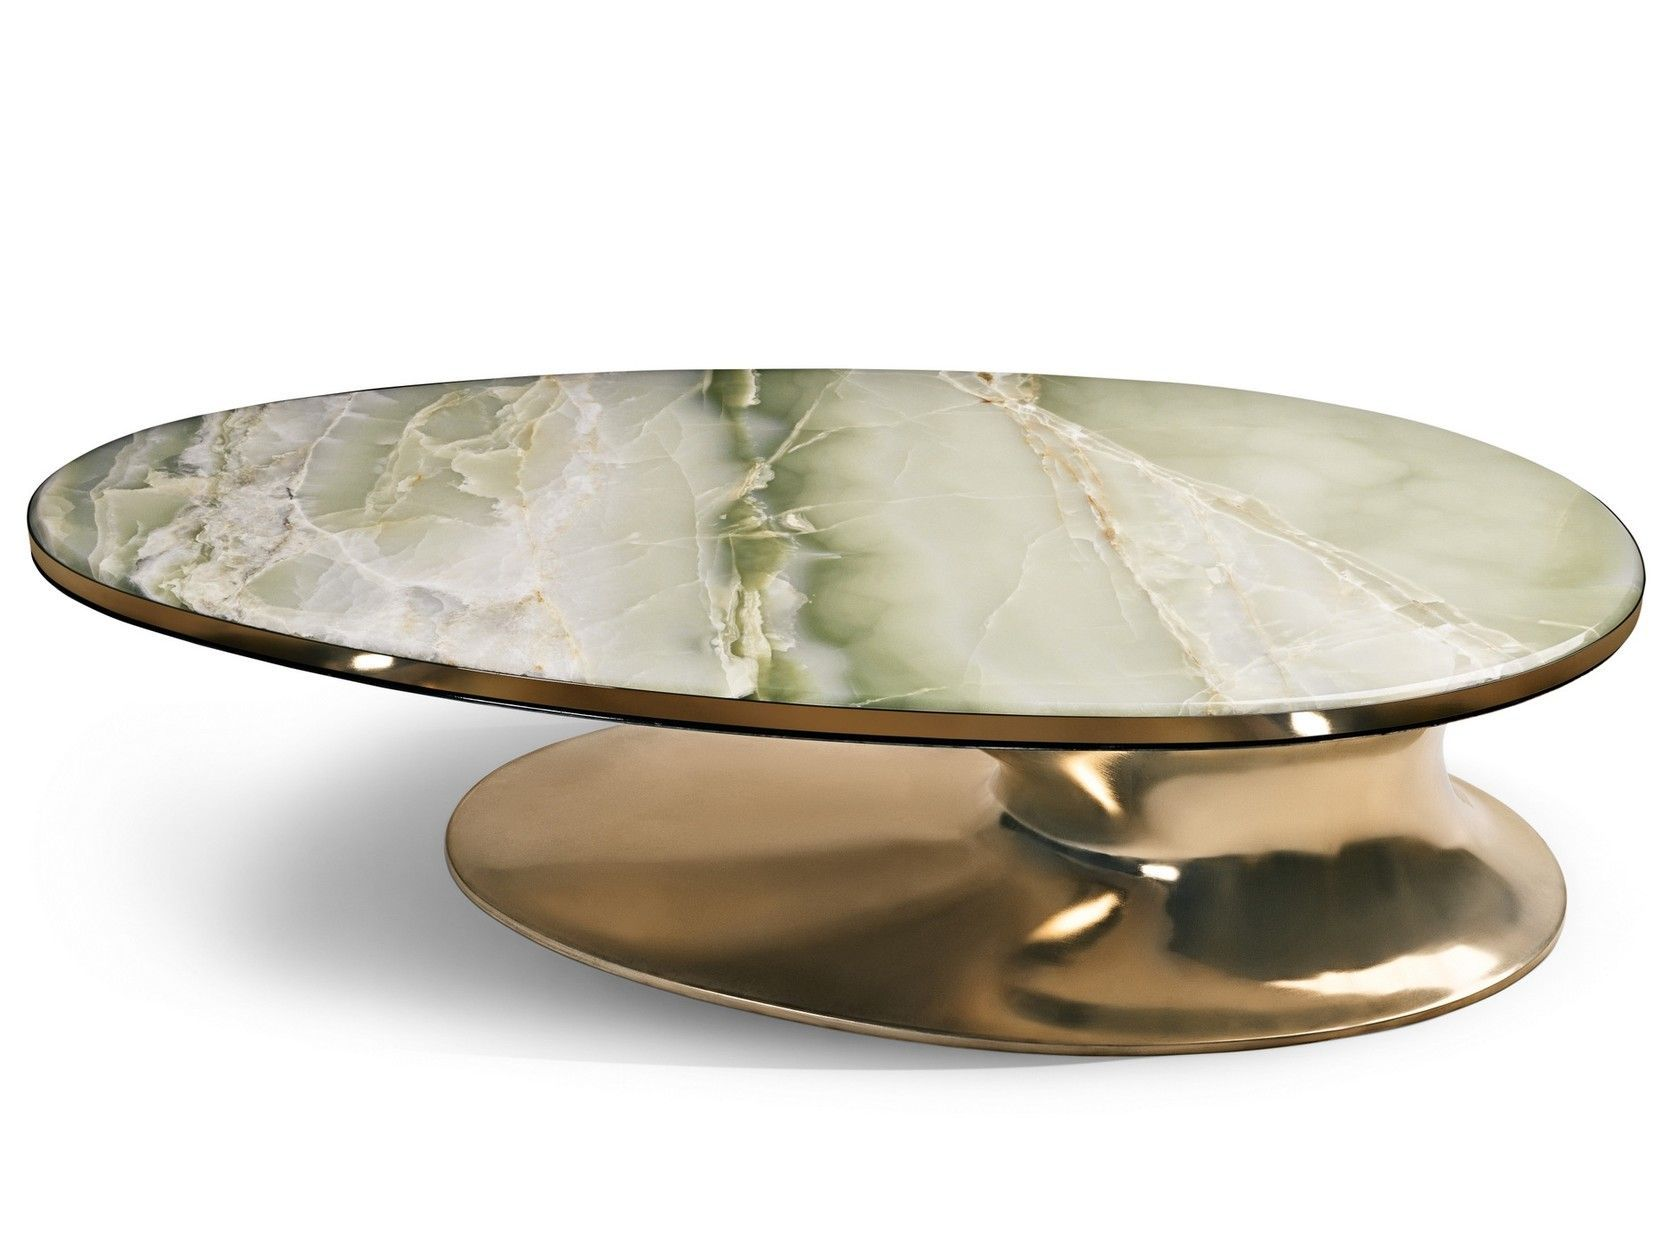 22 Modern Coffee Tables Designs Interesting Best Unique And Classy Oval Marble Coffee Table Marble Coffee Table Coffee Table [ 1259 x 1680 Pixel ]